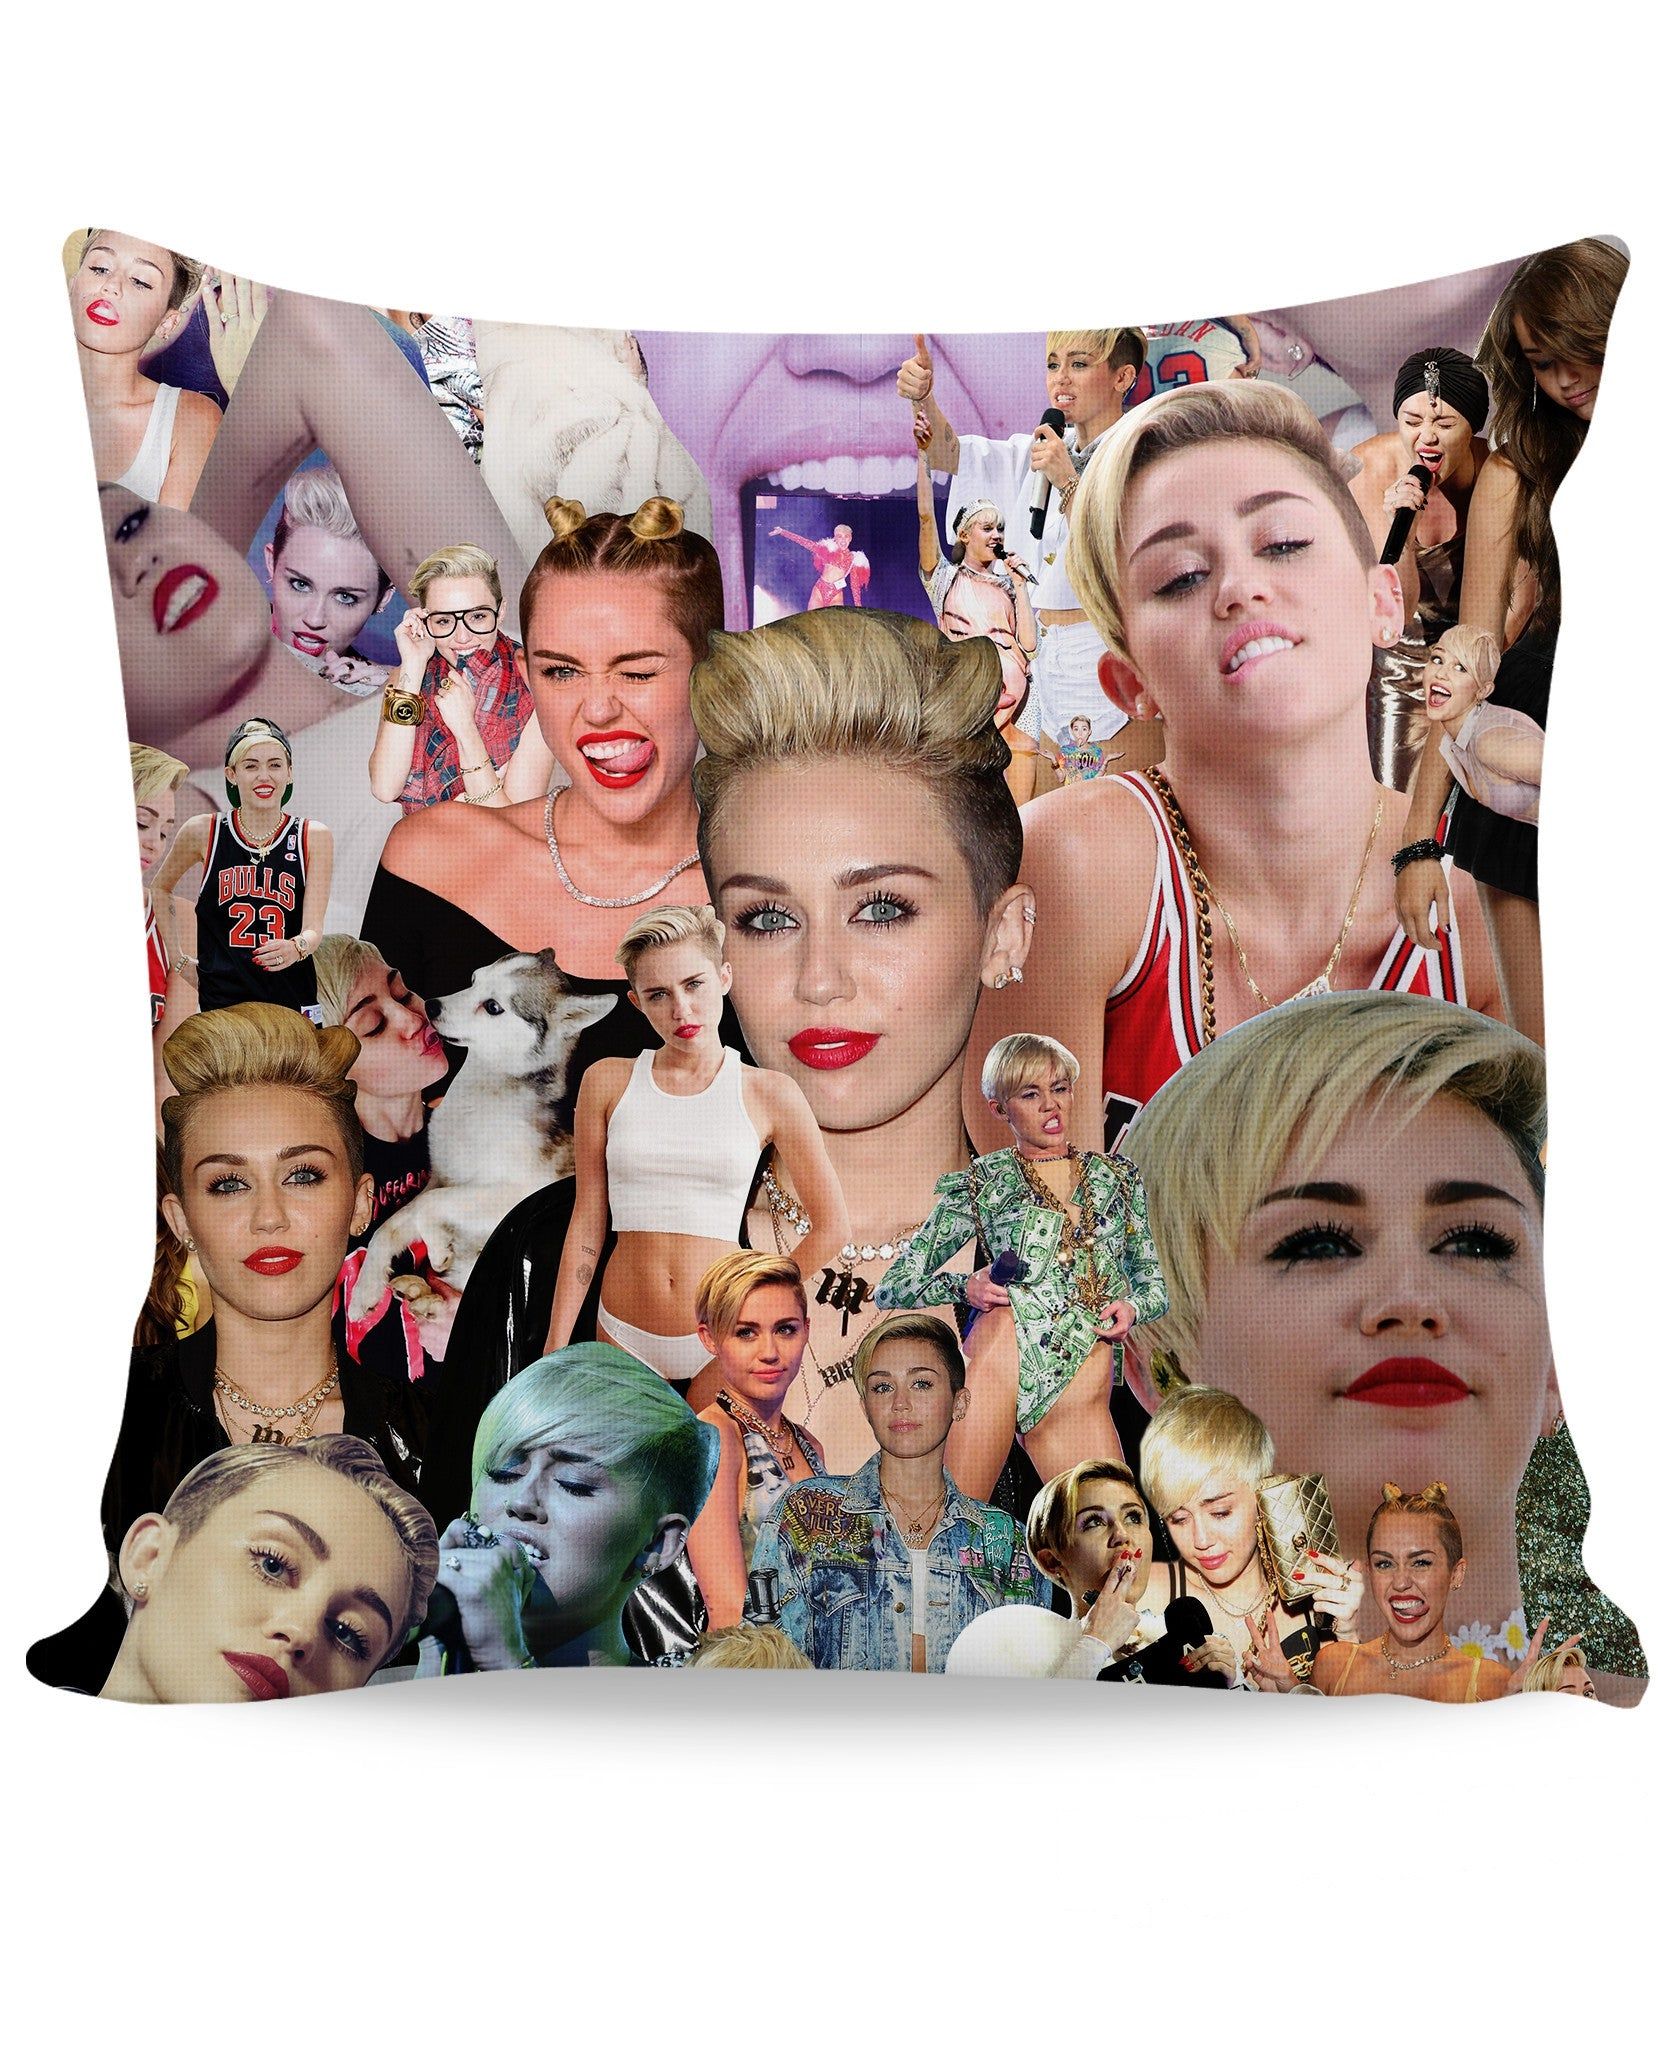 Miley Cyrus Paparazzi Couch Pillow